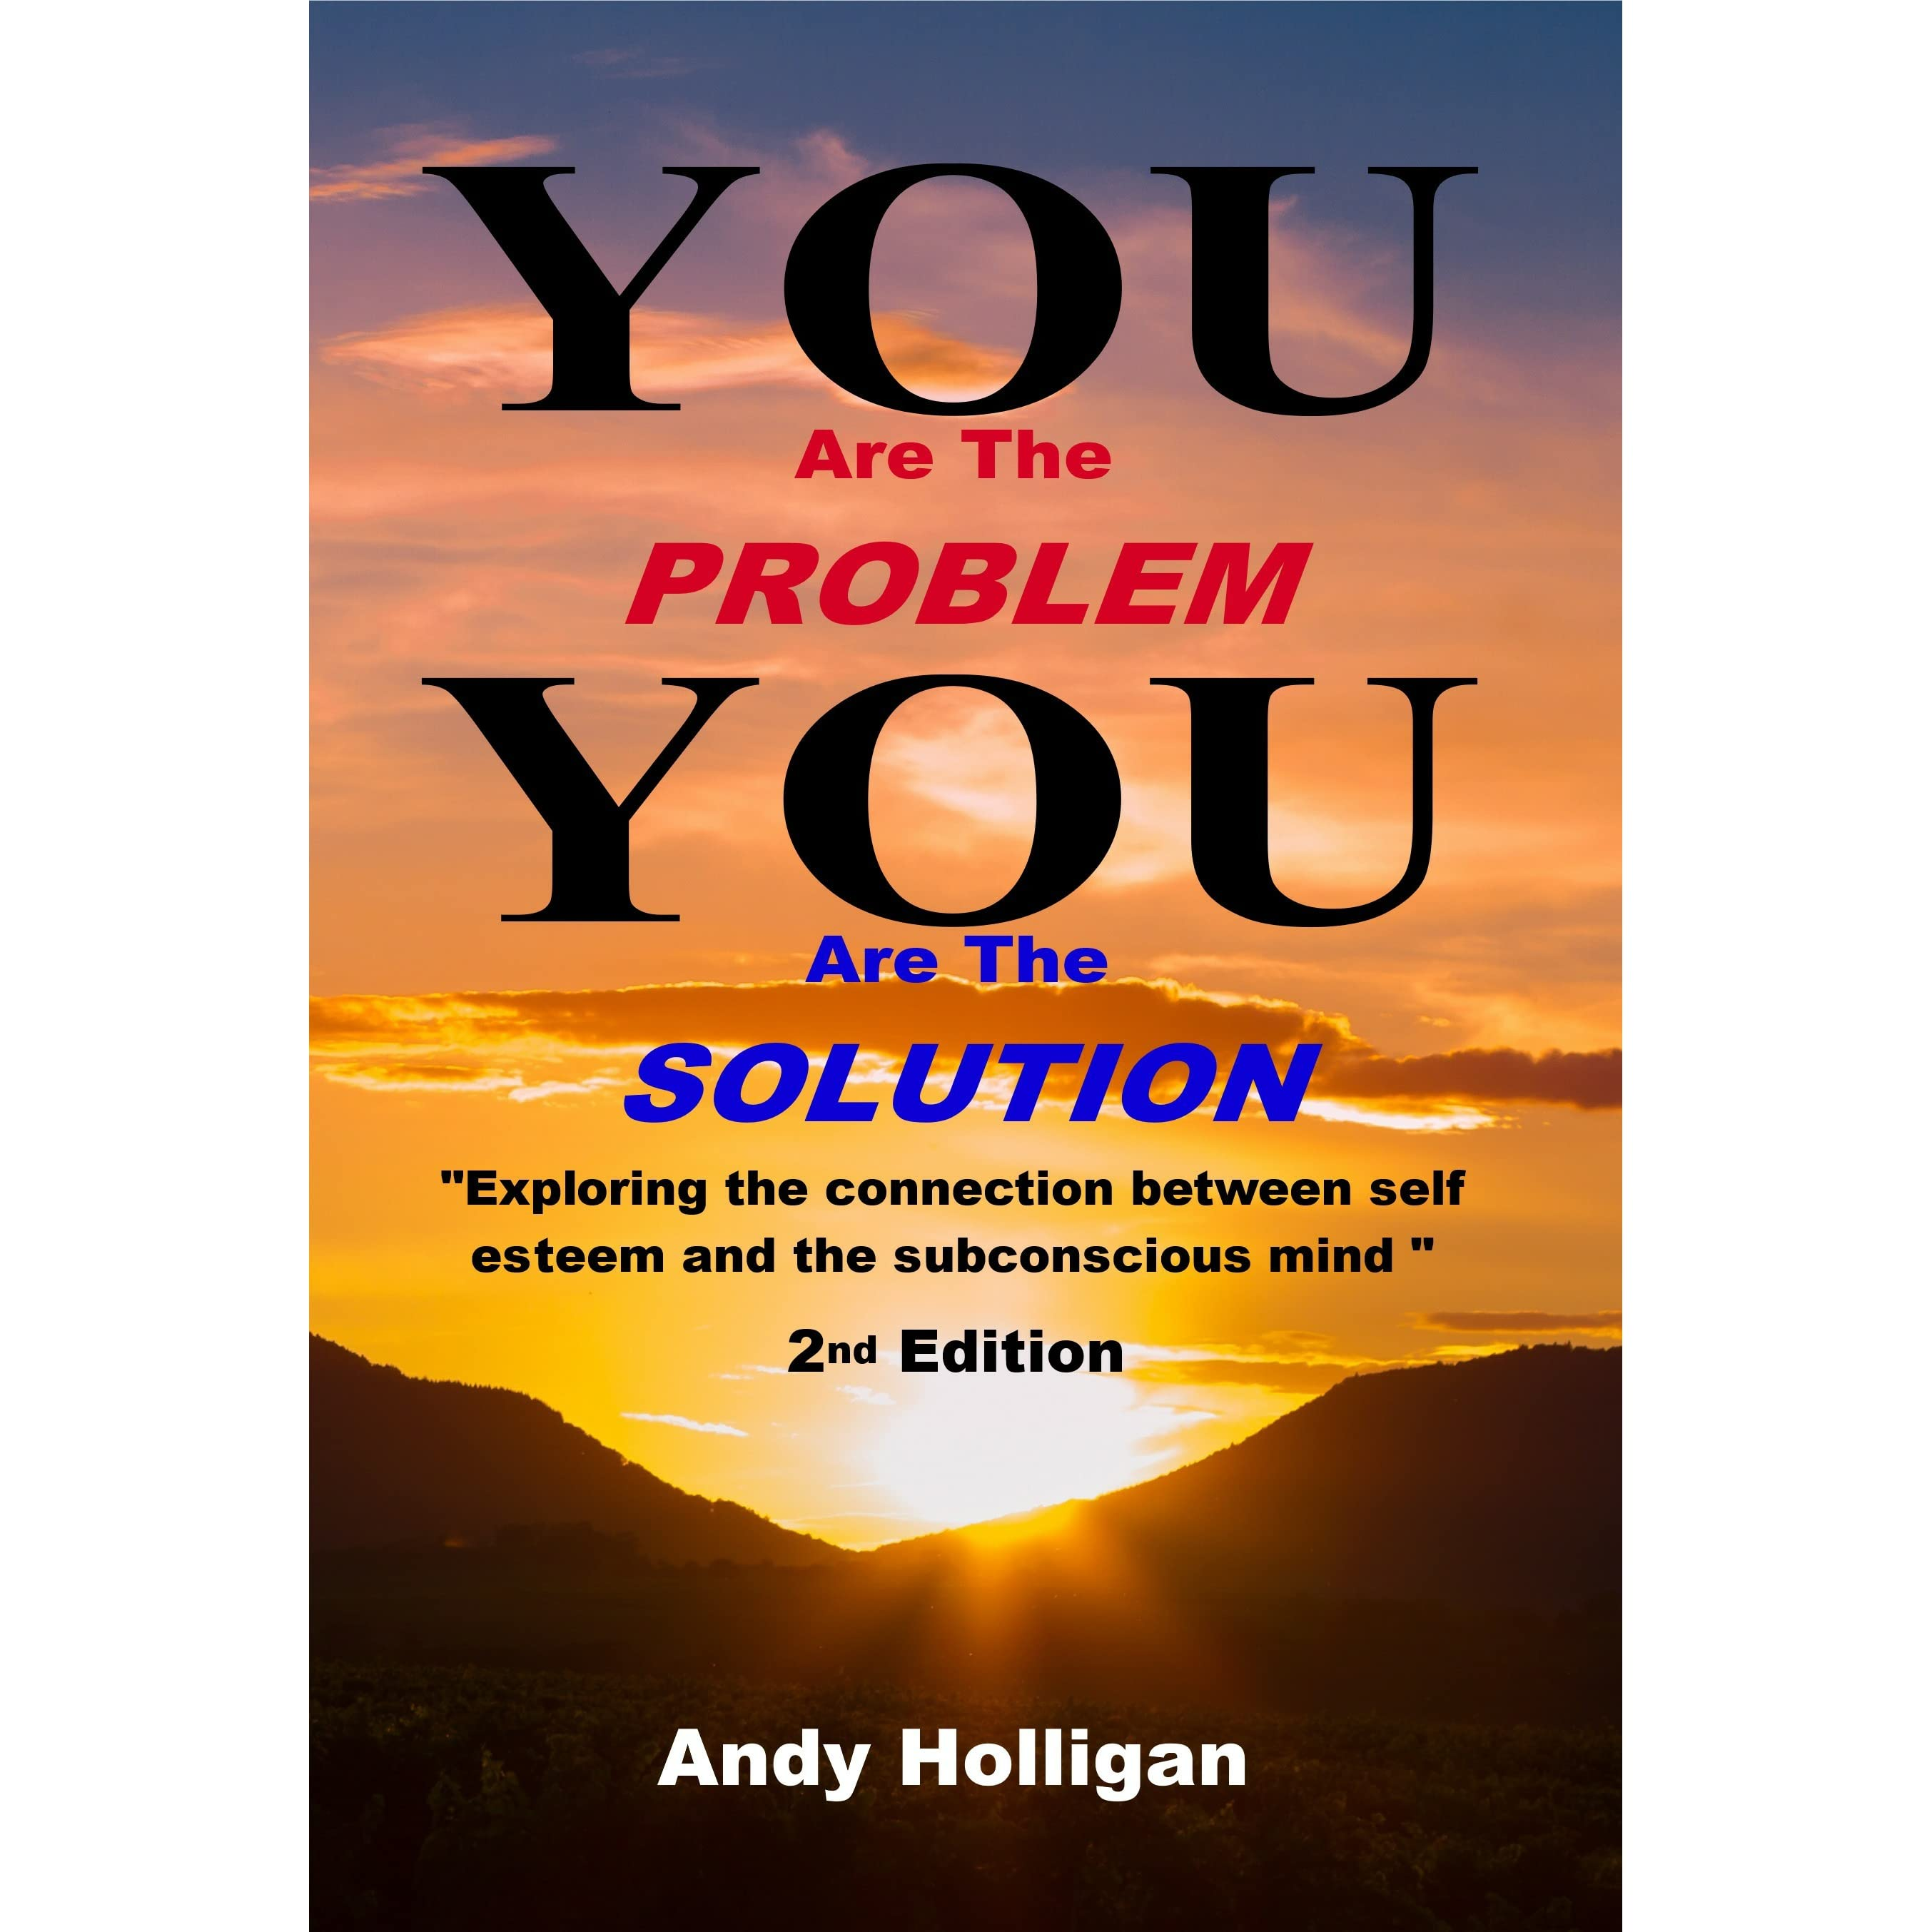 Defining the Problem to Find the Solution